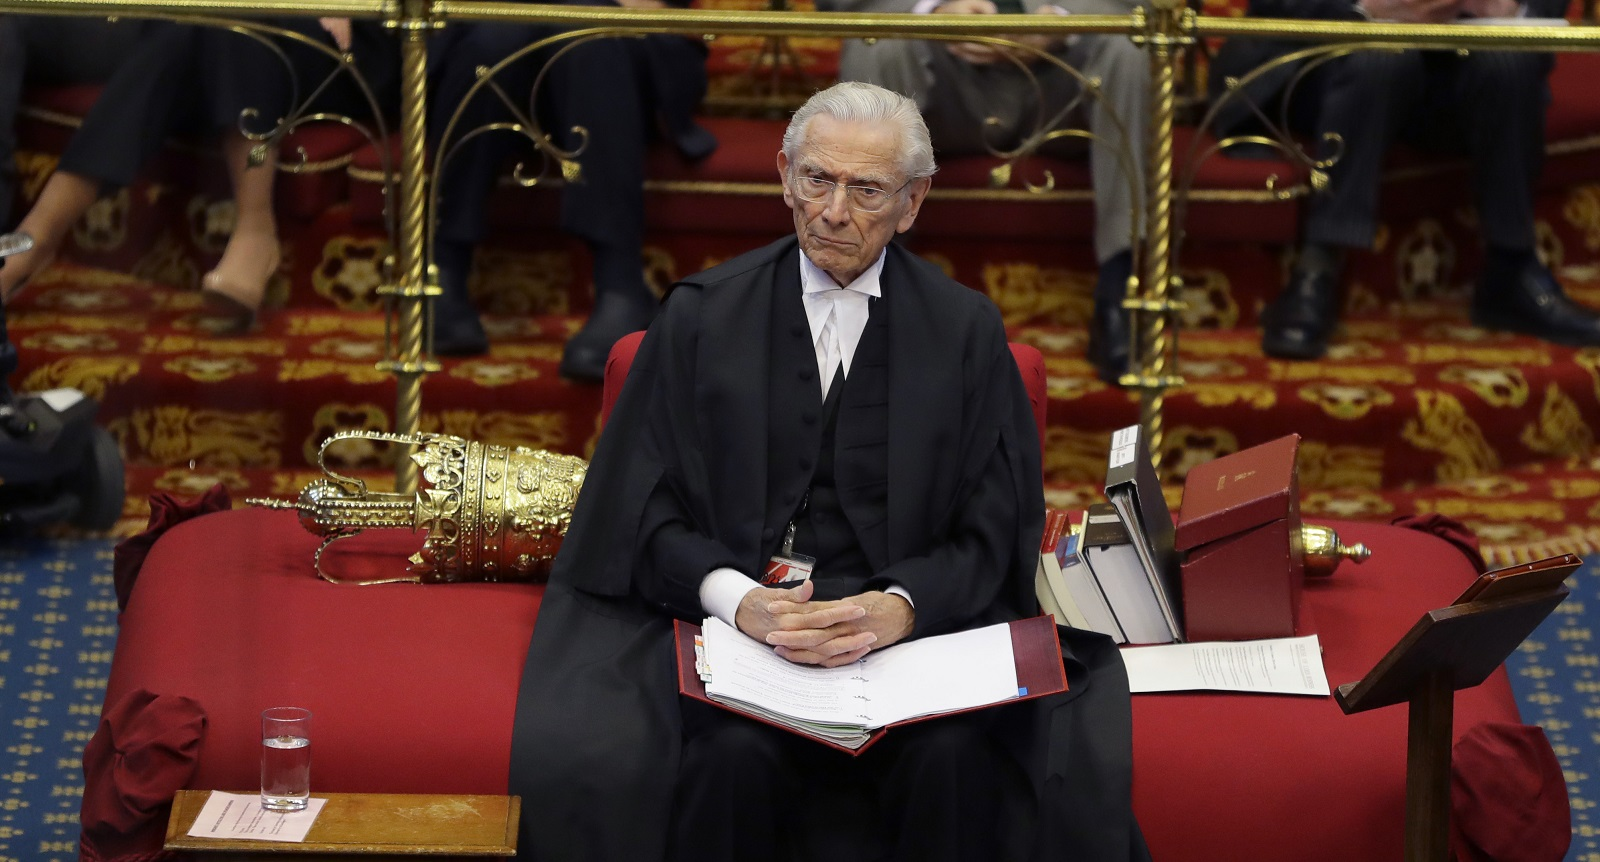 The Lord Speaker Lord Fowler listens inside the House of Lords